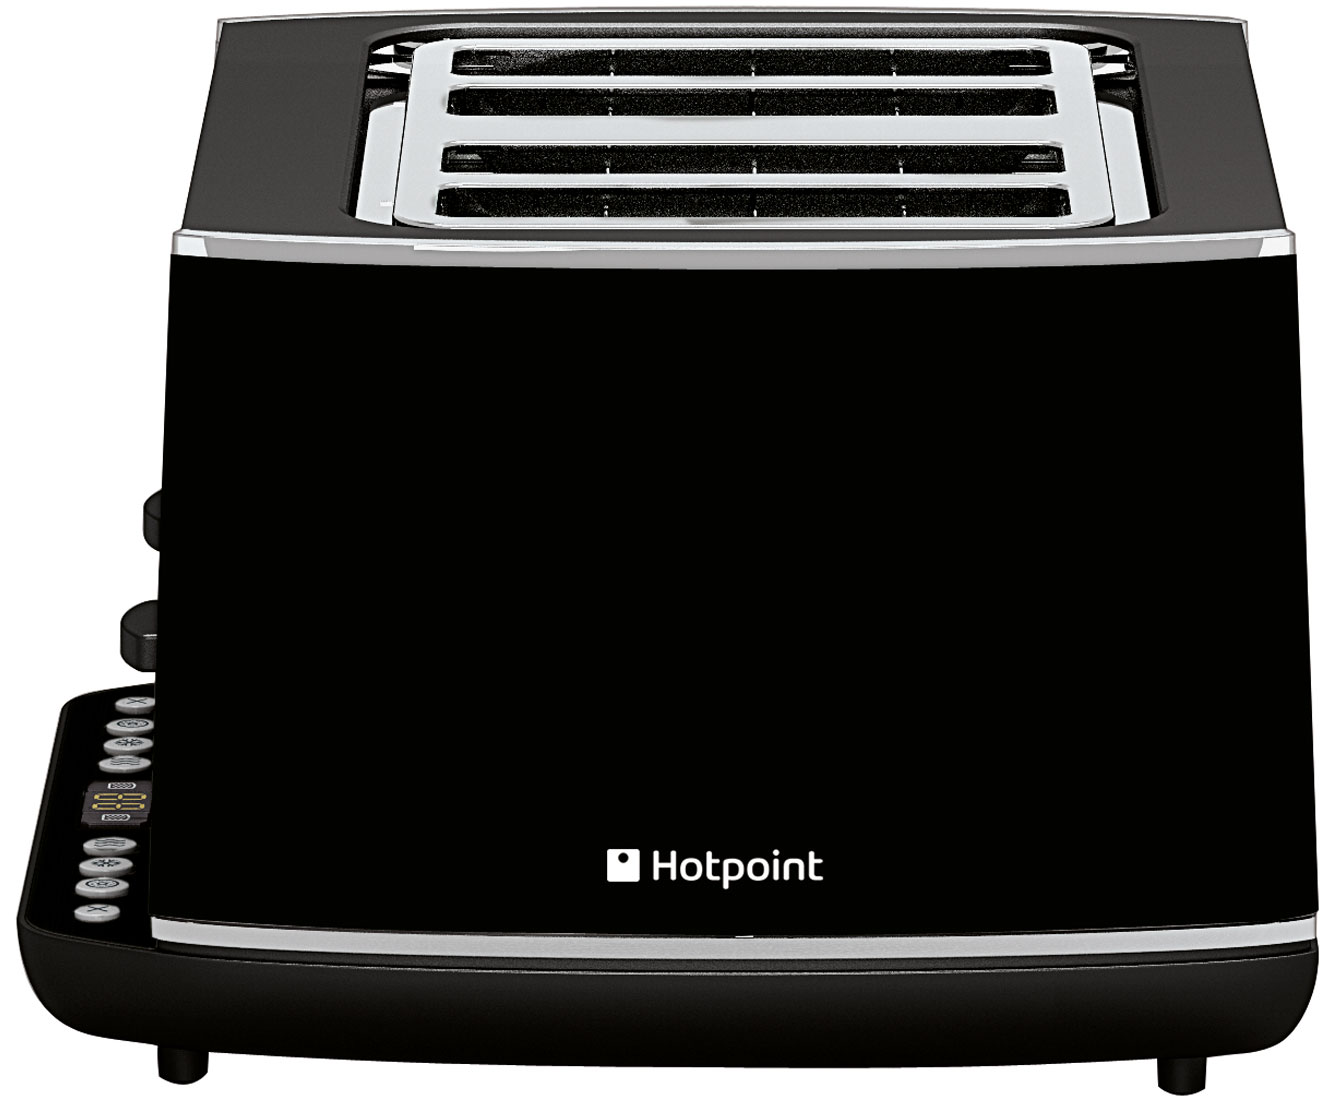 Hotpoint TT44EAB0UK 4 Slice Toaster - Black